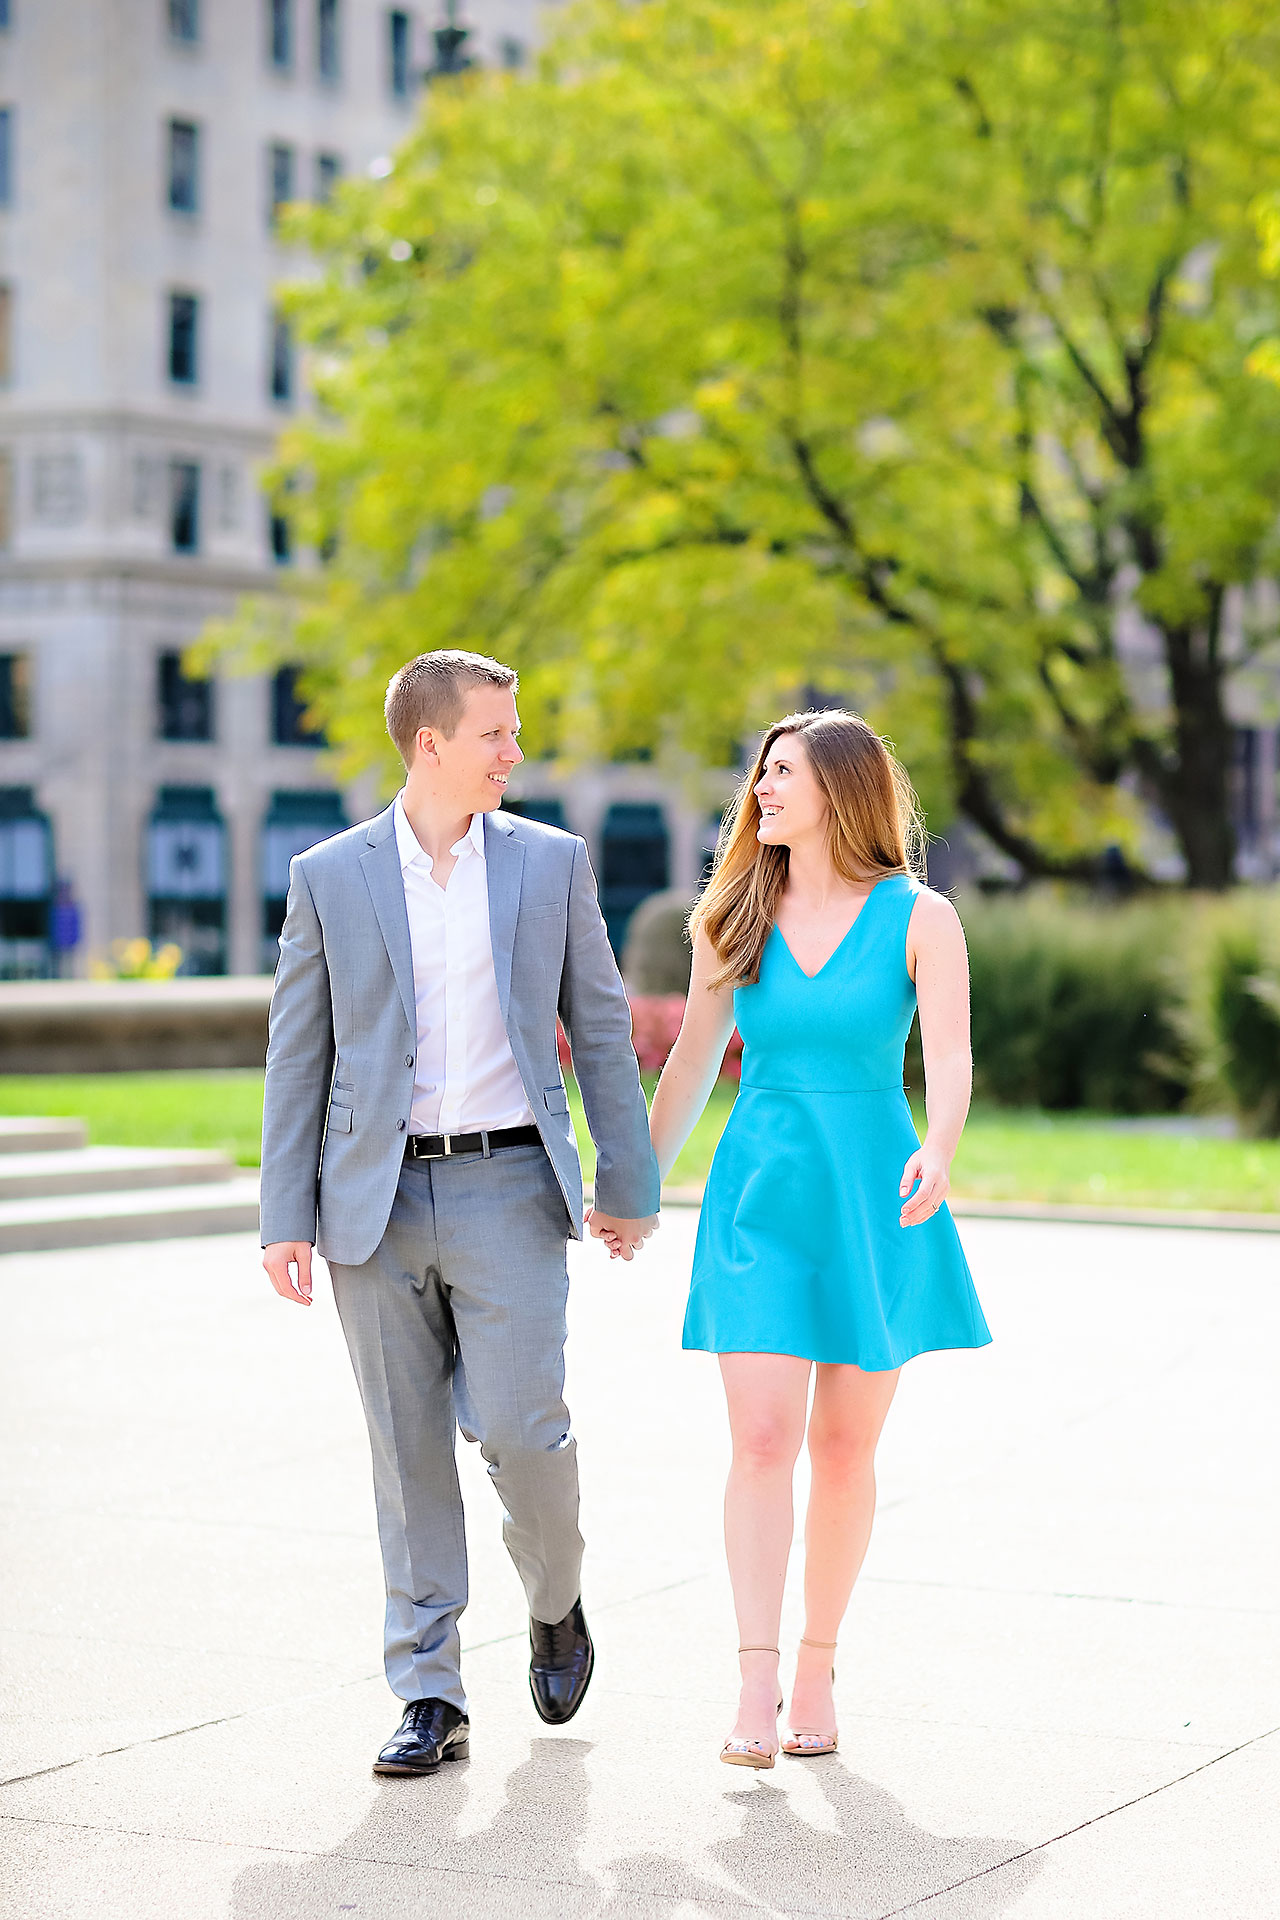 Chelsea Jeff Downtown Indy Engagement Session 113